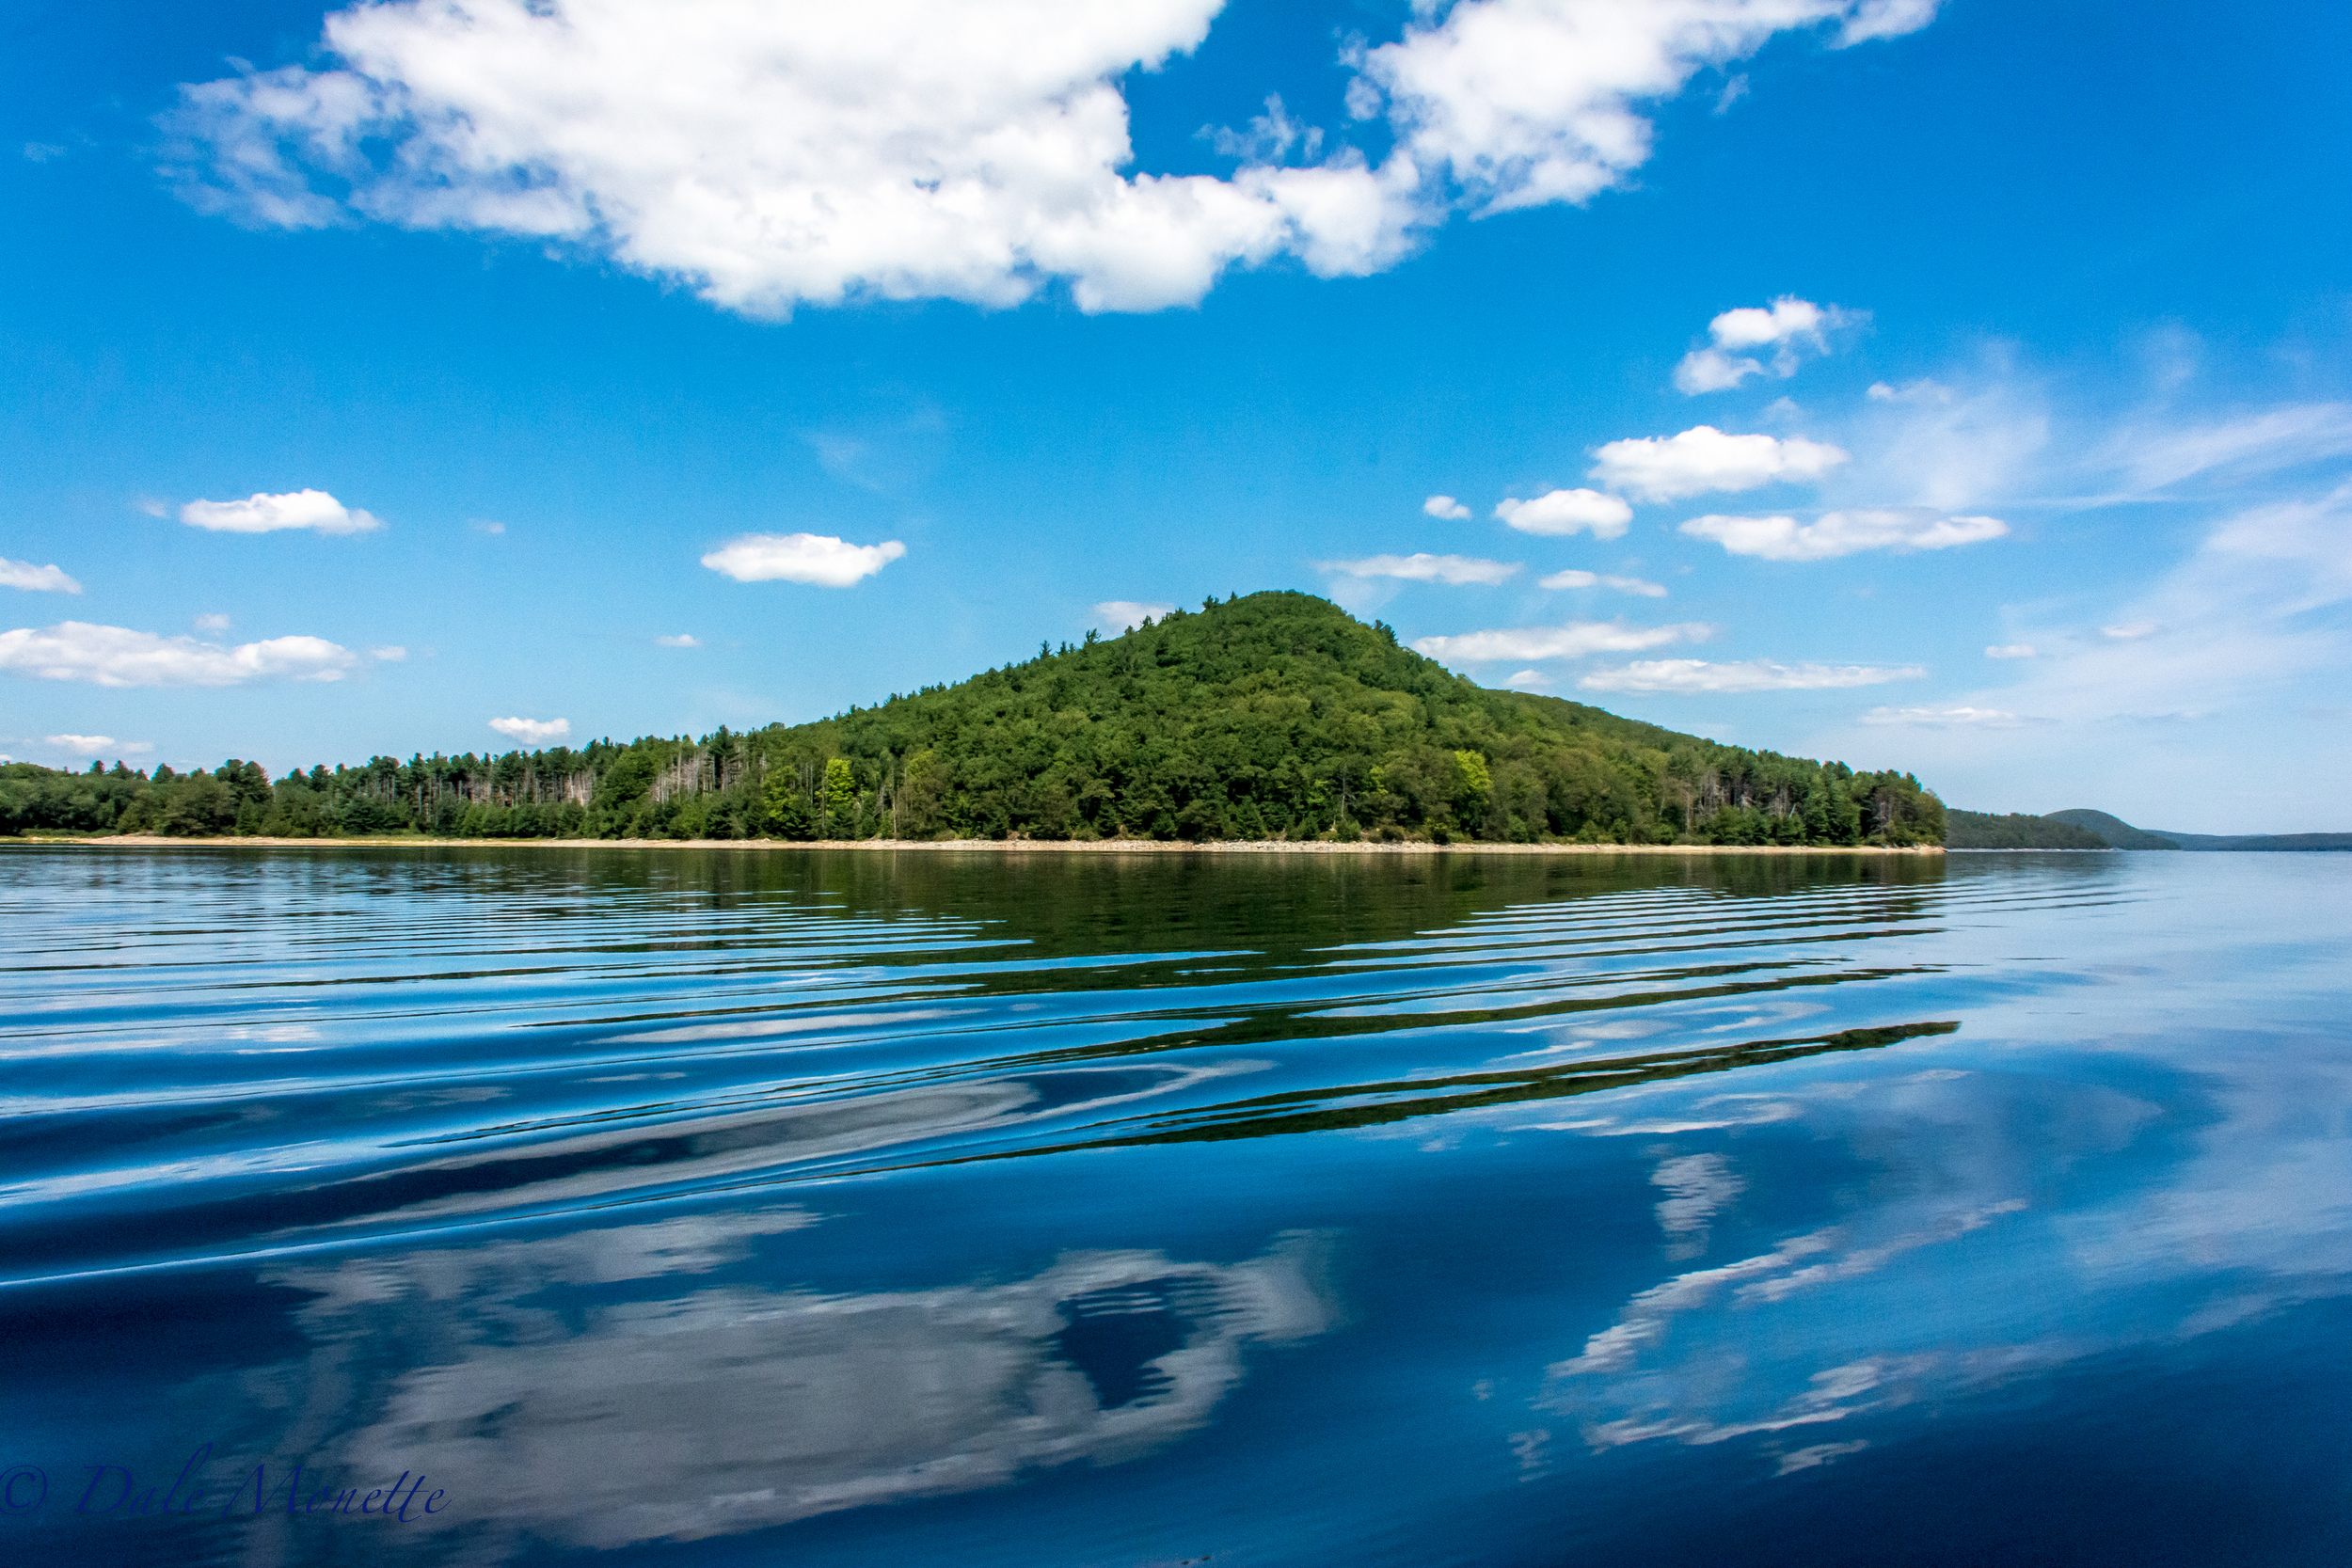 Mt Ram at the south end of the Prescott Peninsula. You see this from the Enfield Lookout. I was in a boat and we were right over the town of Enfield, or what used to be Enfield before the Quabbin was built. 8/9/16